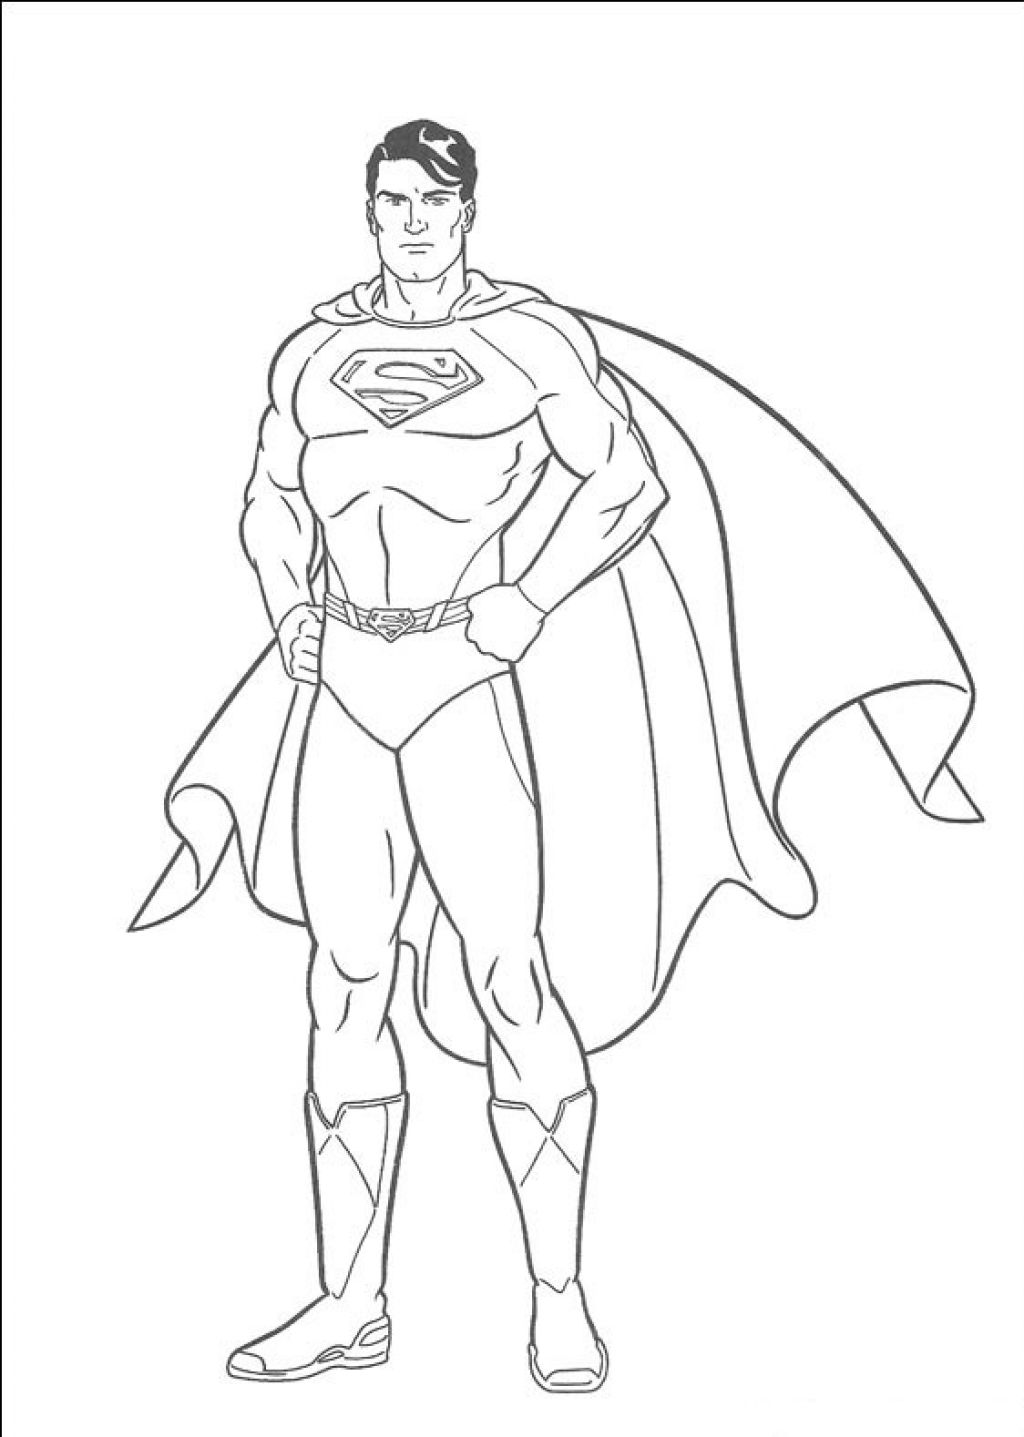 coloring pages superman - photo#17